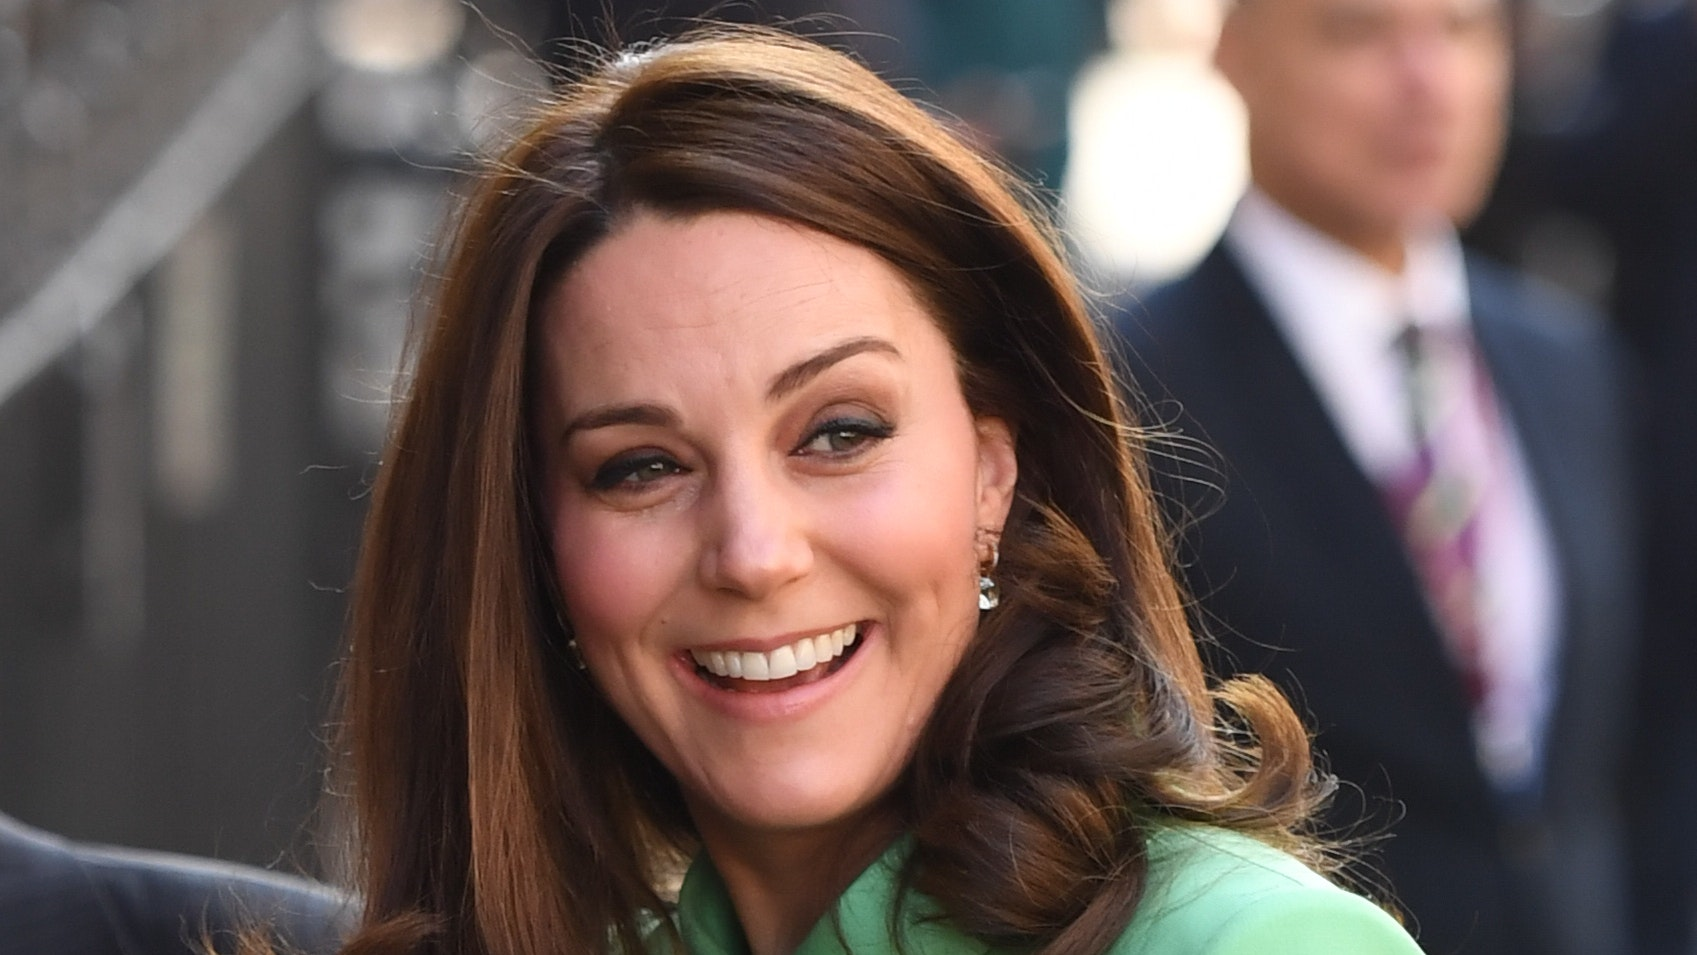 Duchess of Cambridge is officially on maternity leave